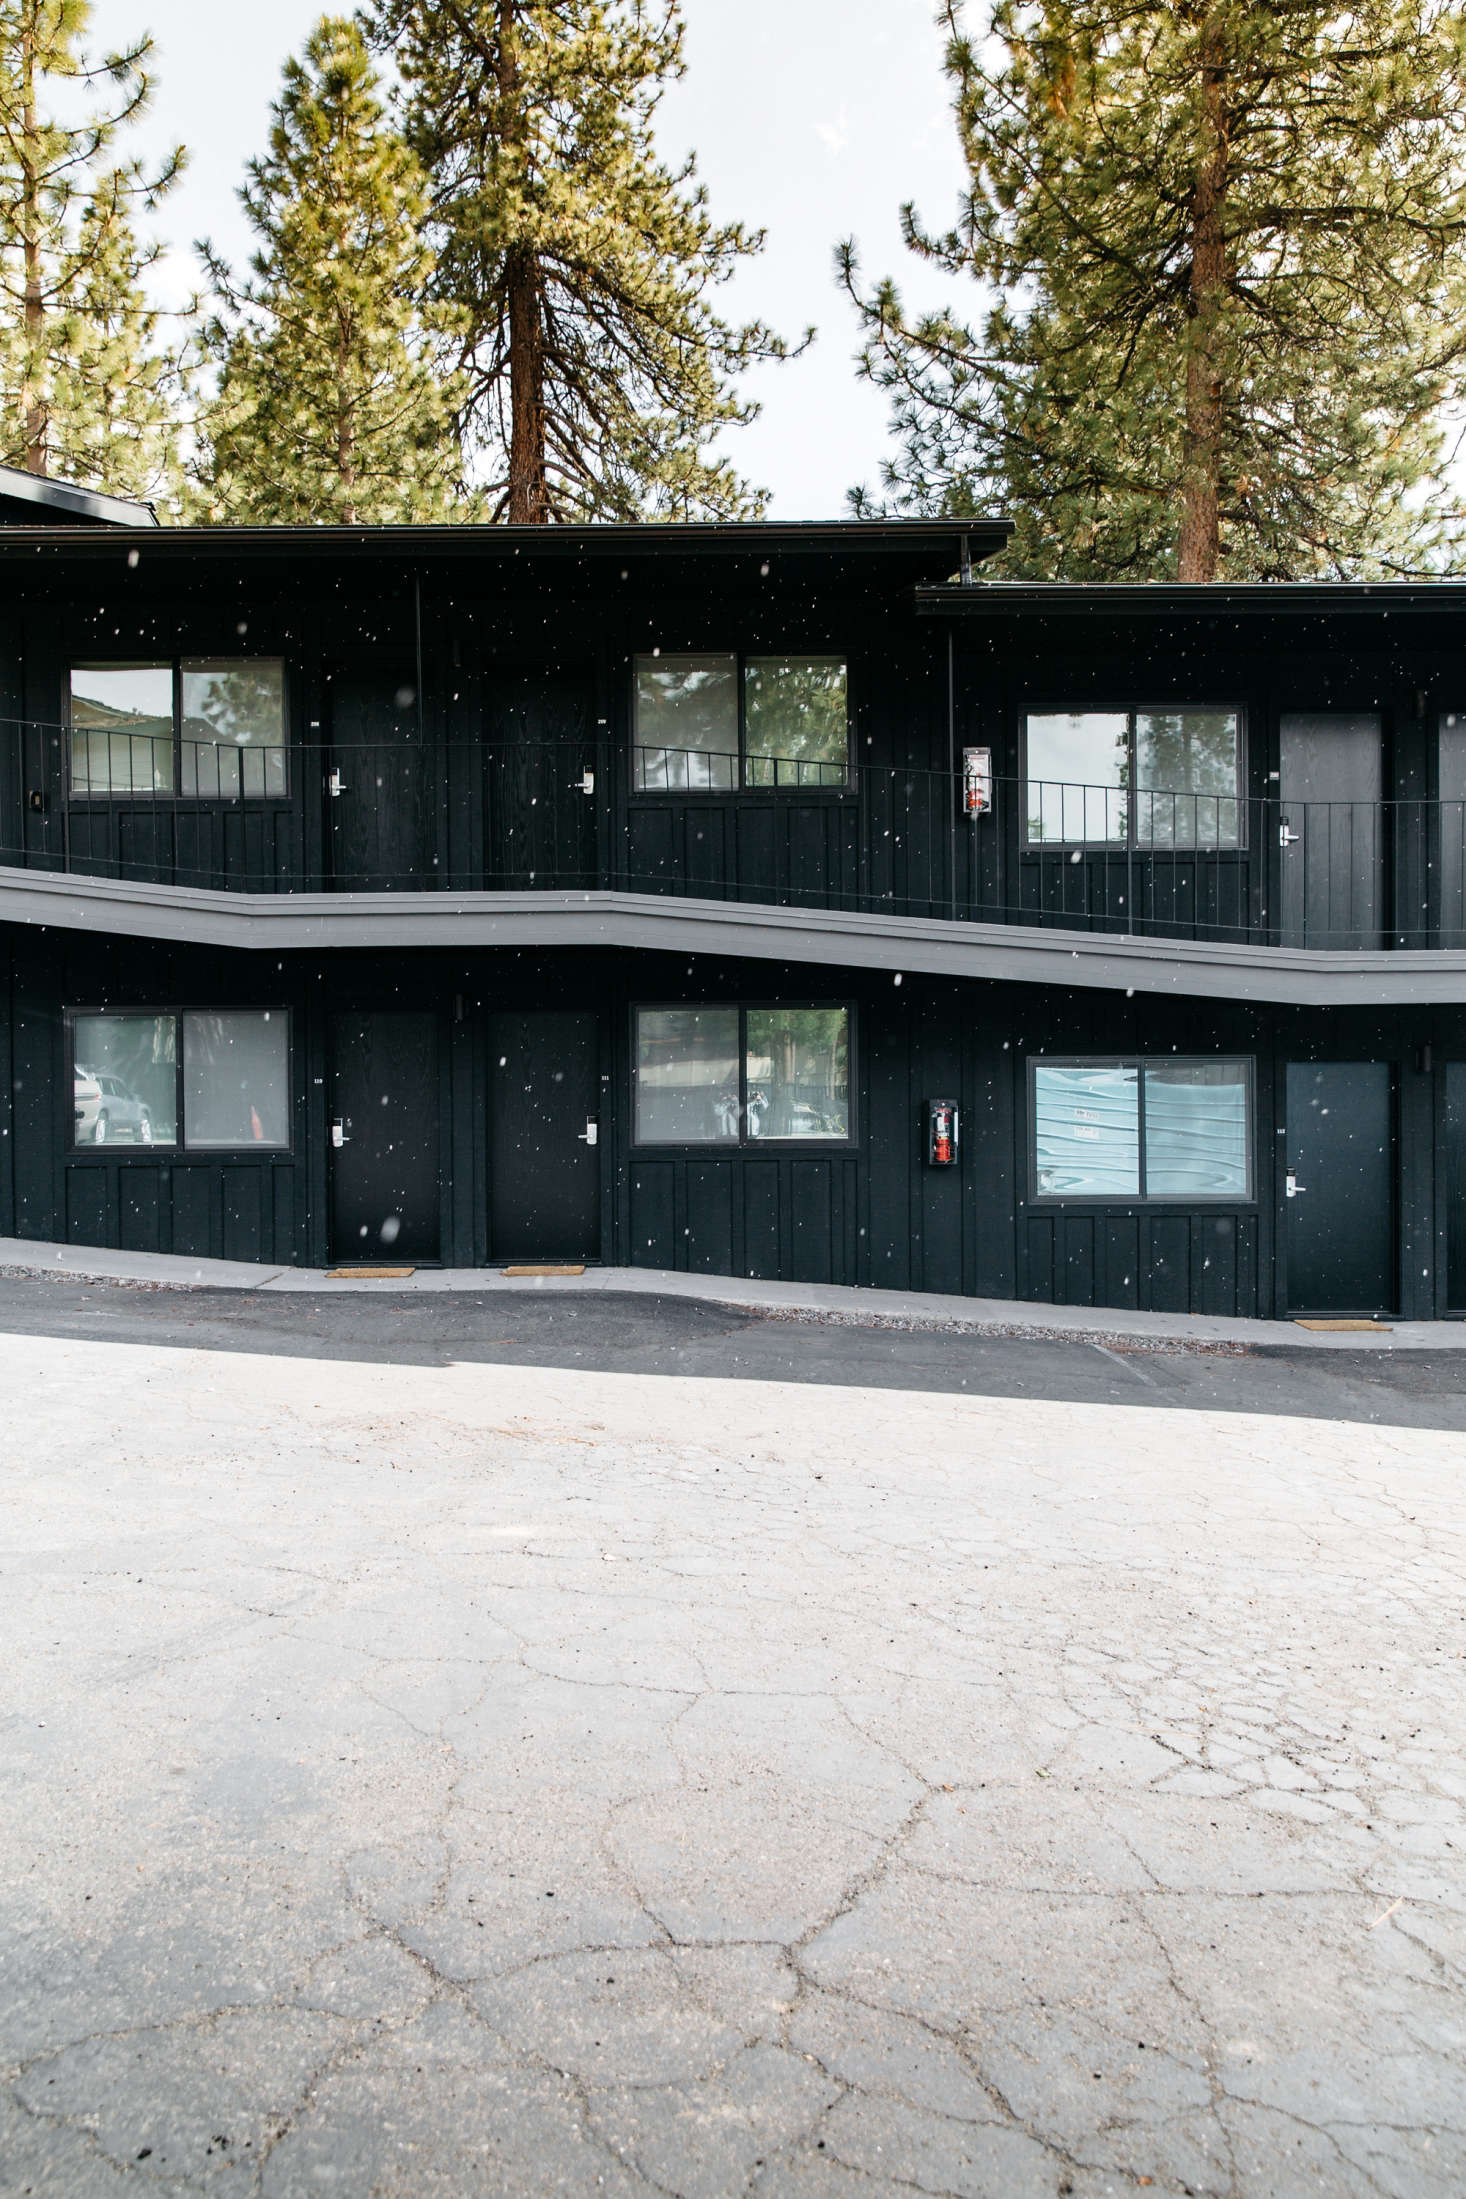 At the Coachman Hotel in South Lake Tahoe, California, the exterior of the buildings were painted a unifying coat of Benjamin Moore Black Panther.Photograph by Luke Beard and Matthew Bolt, courtesy of the Coachman Hotel.